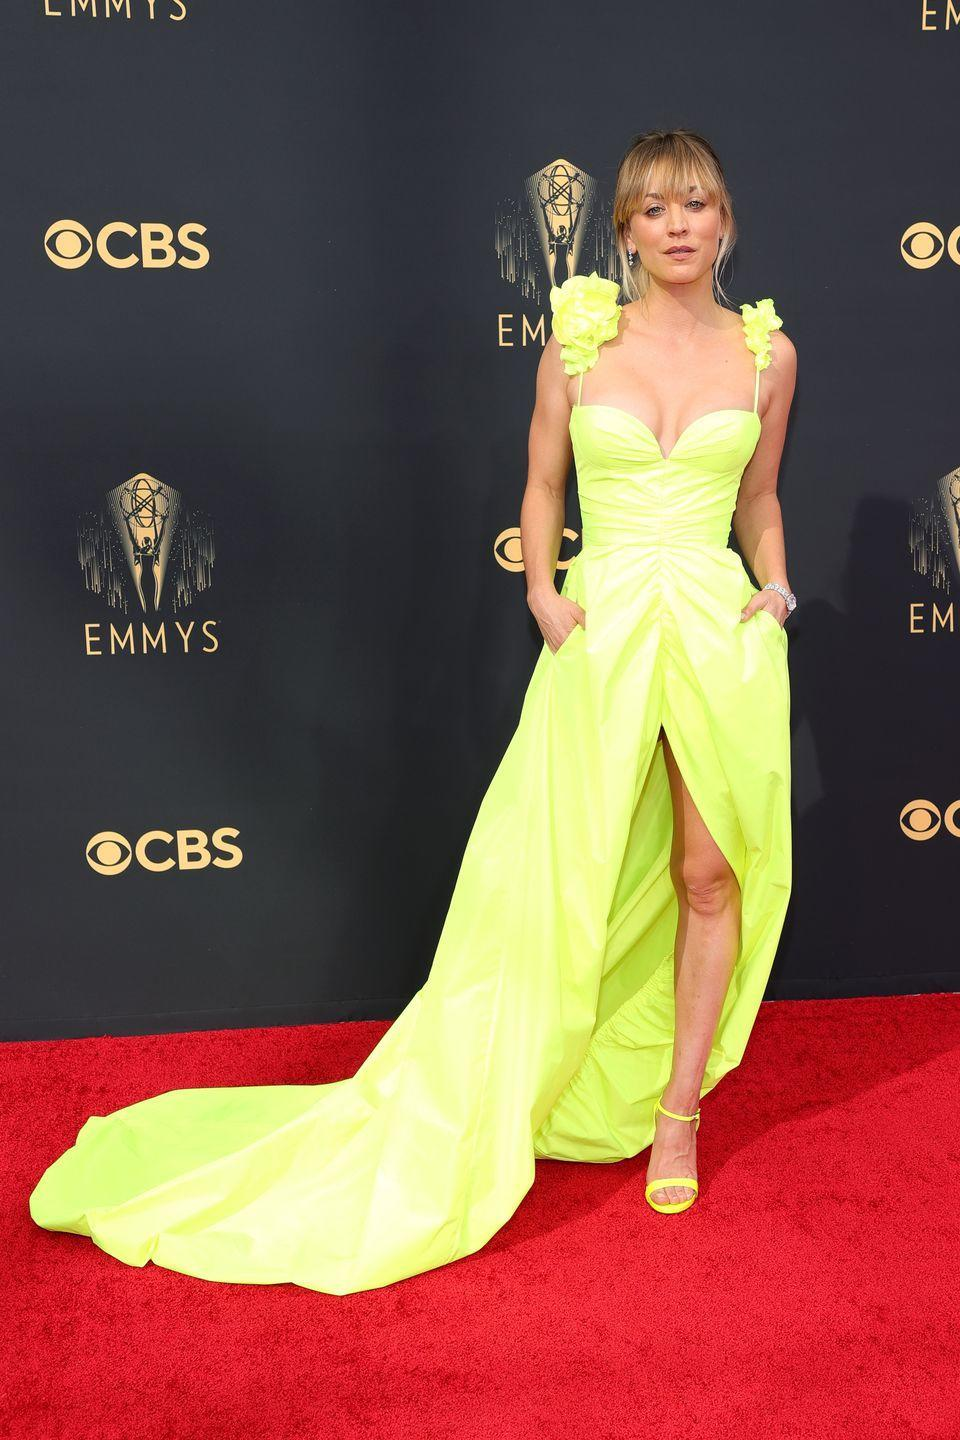 <p>Neon was a big trend for the night, and Kaley Cuoco was on board. The actress chose a chic gown by Vera Wang, which featured floral detail on the strappy shoulders and a thigh-high slit. She paired the look with matching shoes, De Beers diamonds and a messy updo.</p>